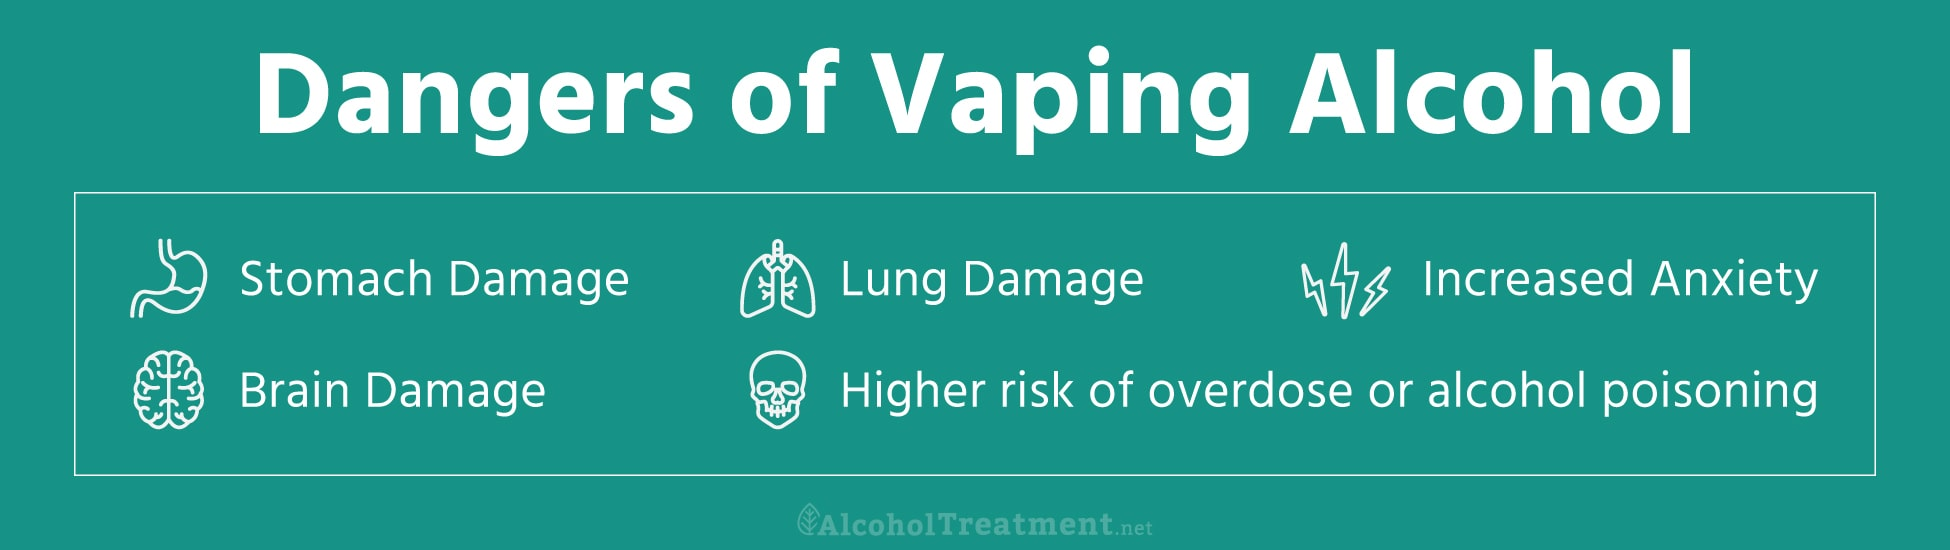 dangers of vaping alcohol